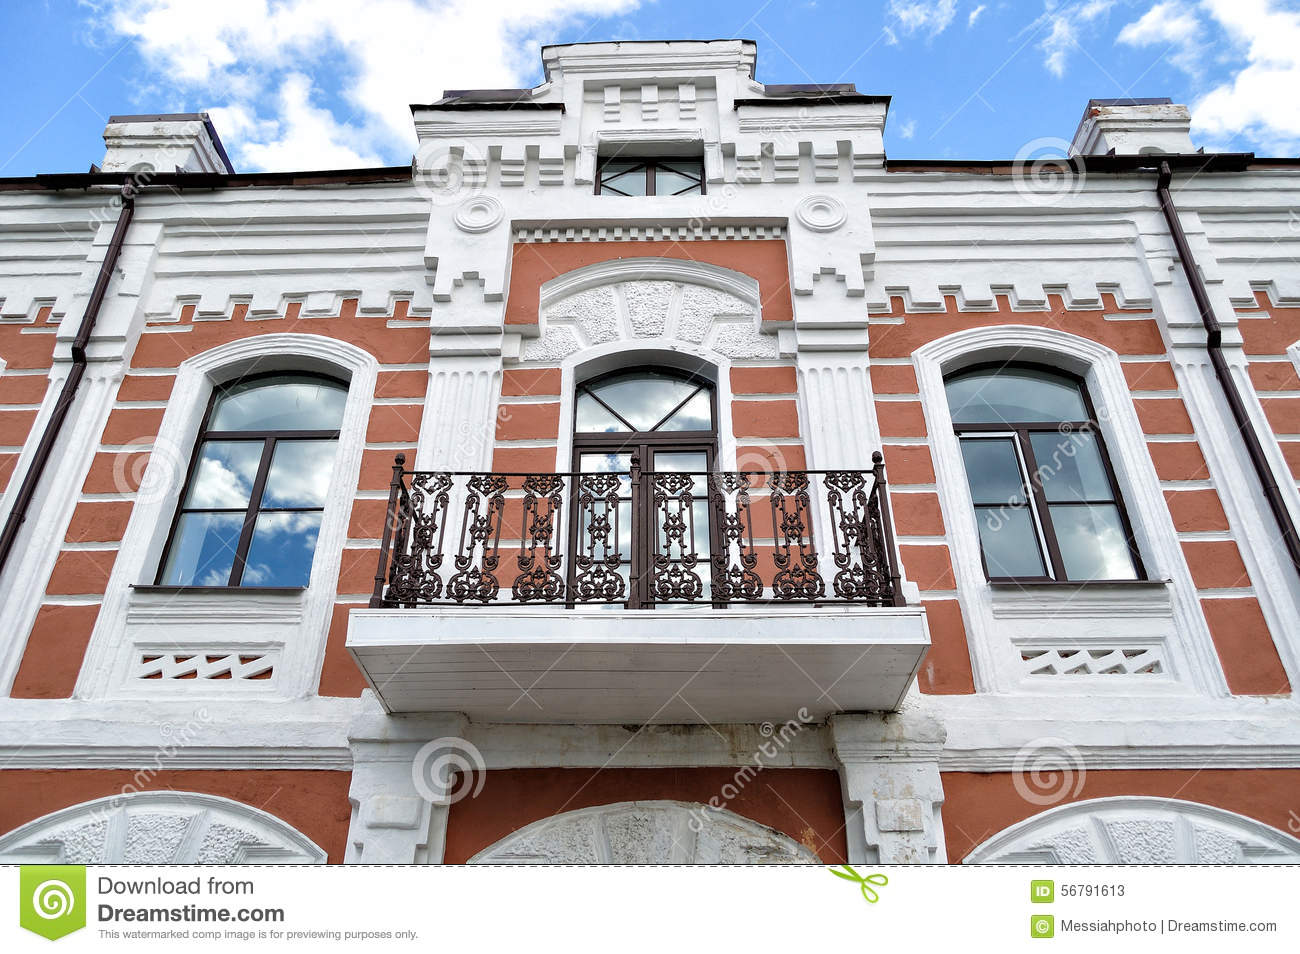 Decorative Sculptural Elements On The Facade Of The Old Building Stock Photography